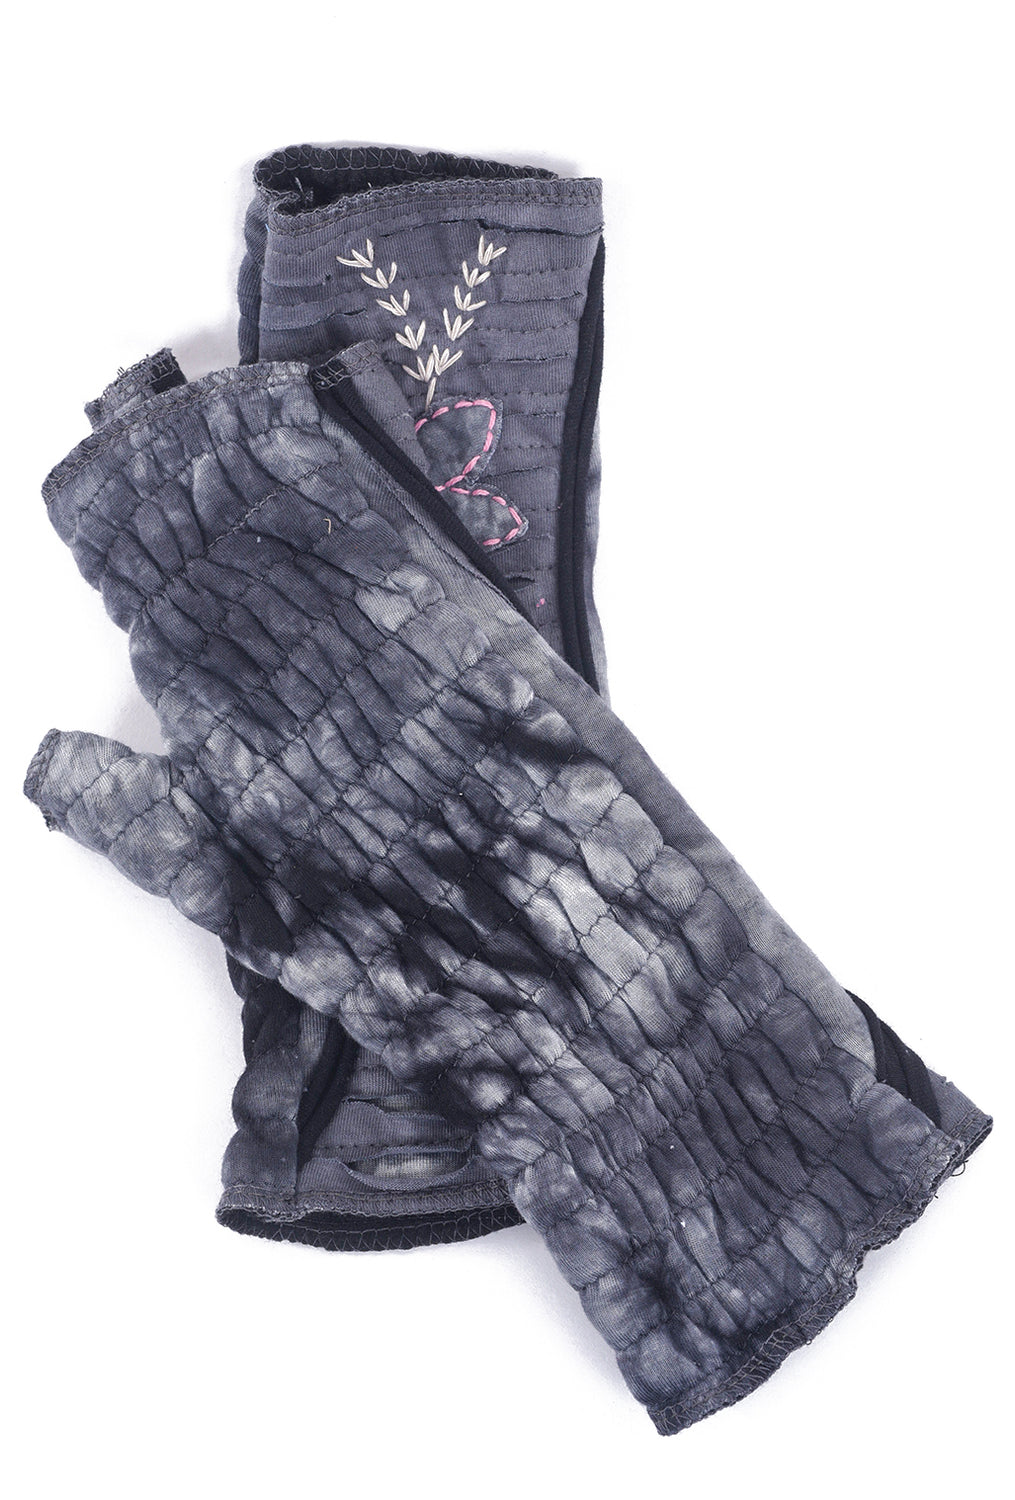 Windhorse Designs Embroidered Fleece Handwarmers, Gray One Size Gray